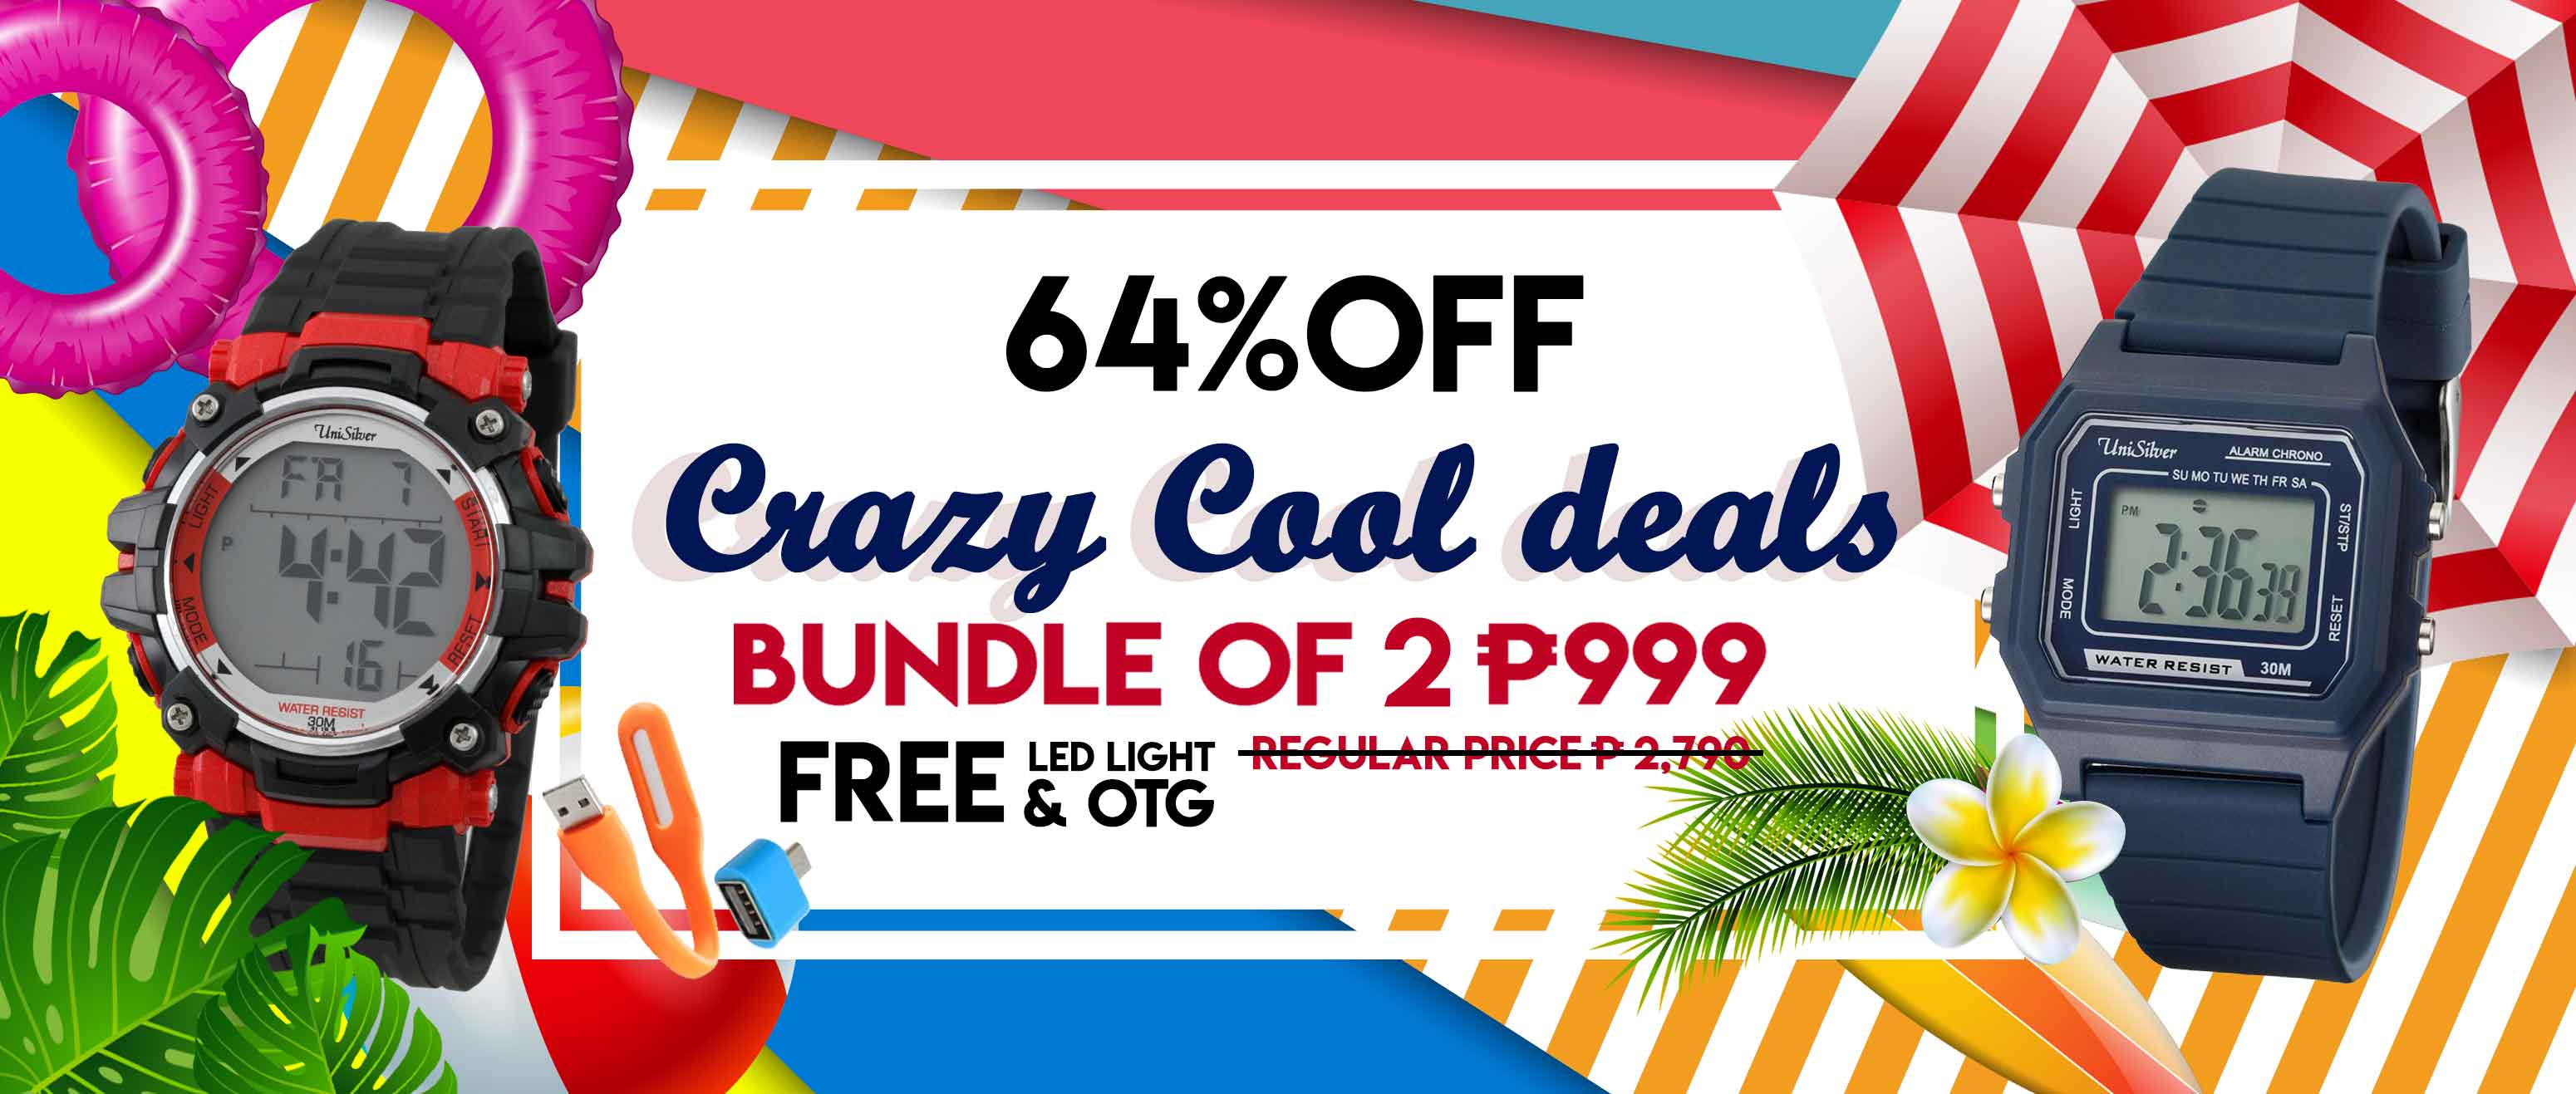 It's insane!  Check out the Crazy Cool Deal from  UniSilver TIME!  Just pick any 2 watches for ₱999 only.  That's 64% off from the regular price of ₱̶̶̶̶̶̶̶̶̶̶̶̶̶̶̶2790Choose from 17 designs.  Free delivery and COD option is available.  This promo is only available online at www.unisilvertime.com f  Hurry order now >>> http://bit.ly/306nBTn